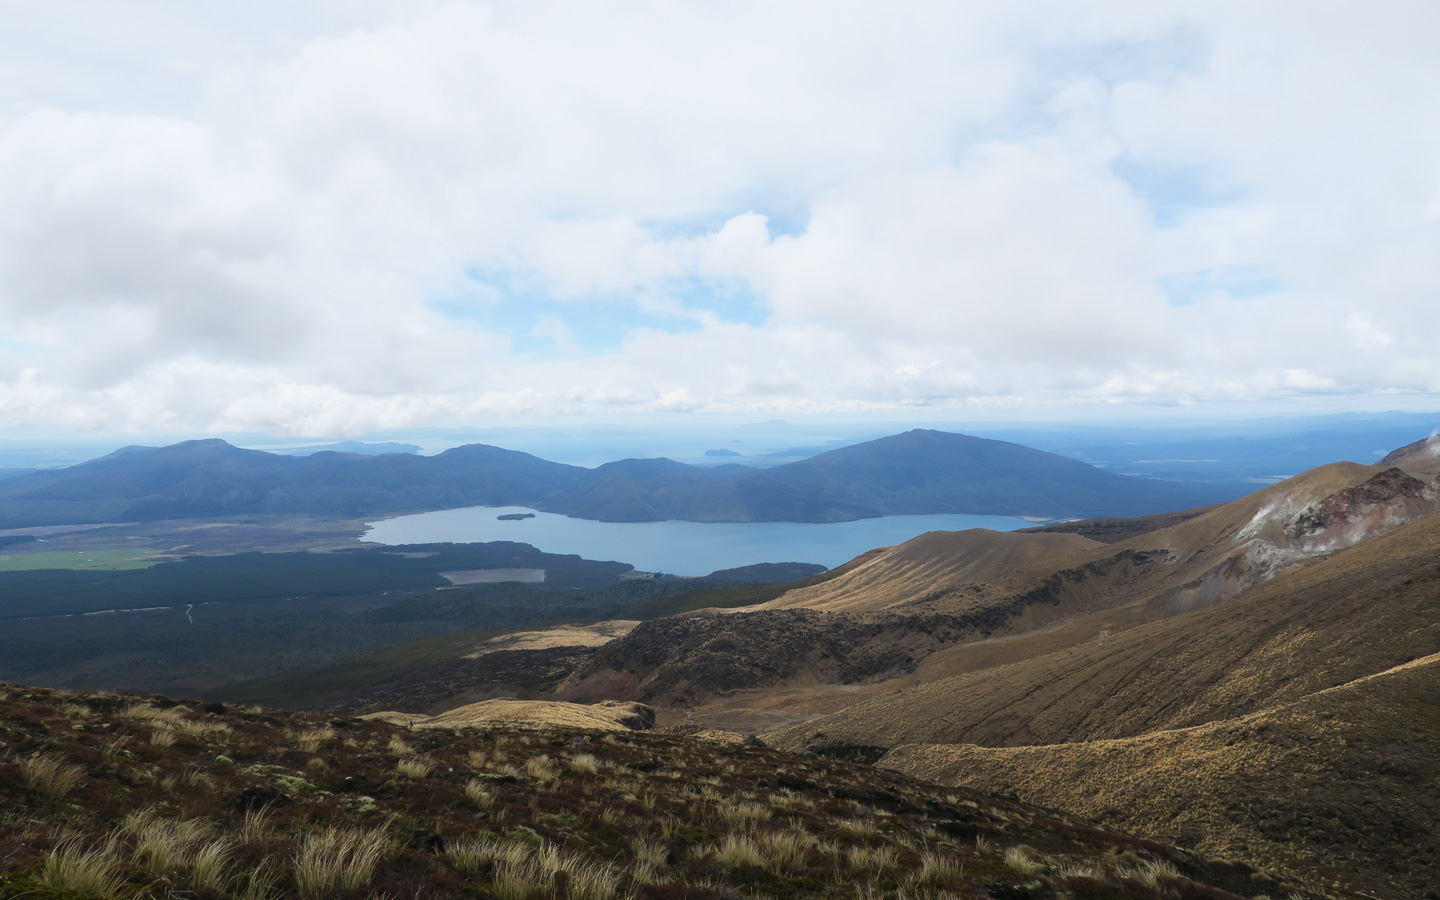 mountain view from the top of mount tongariro in new zealand